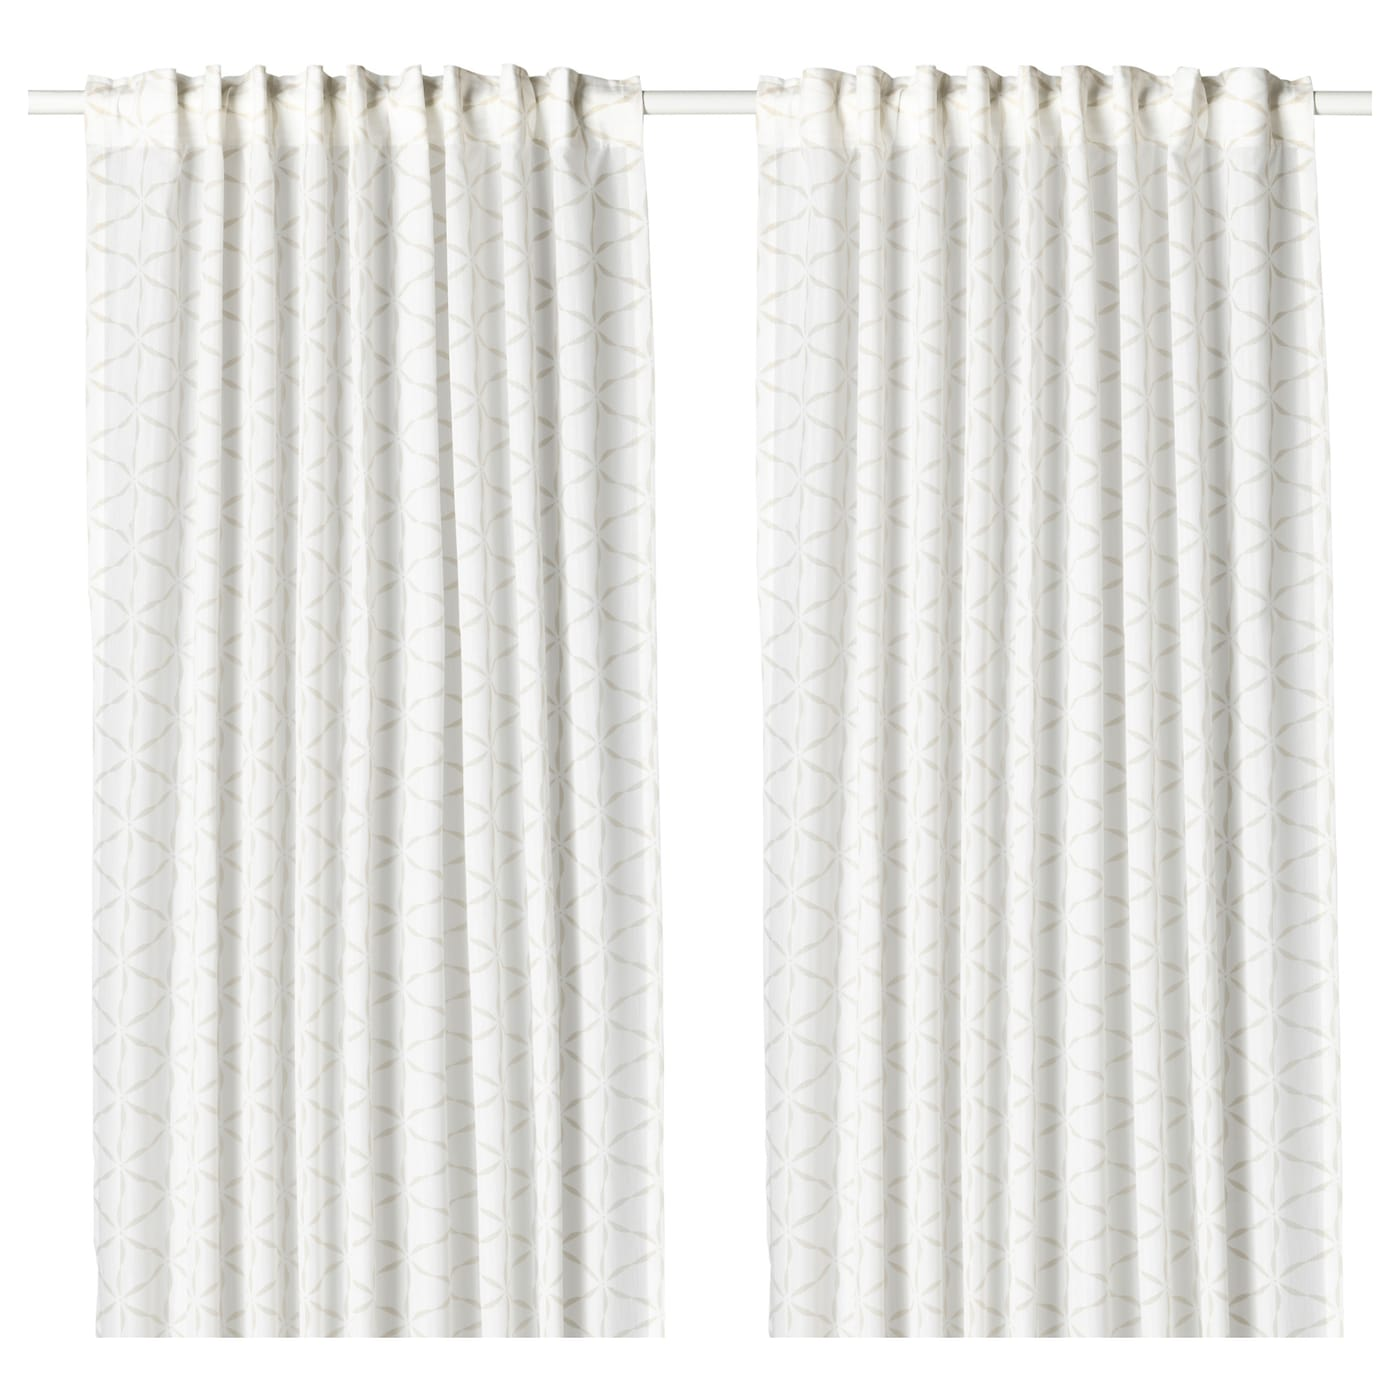 curtains thermal curtain andover mills solid reviews grommet heat panels blackout treatments window basic resistant gainer wayfair pdx